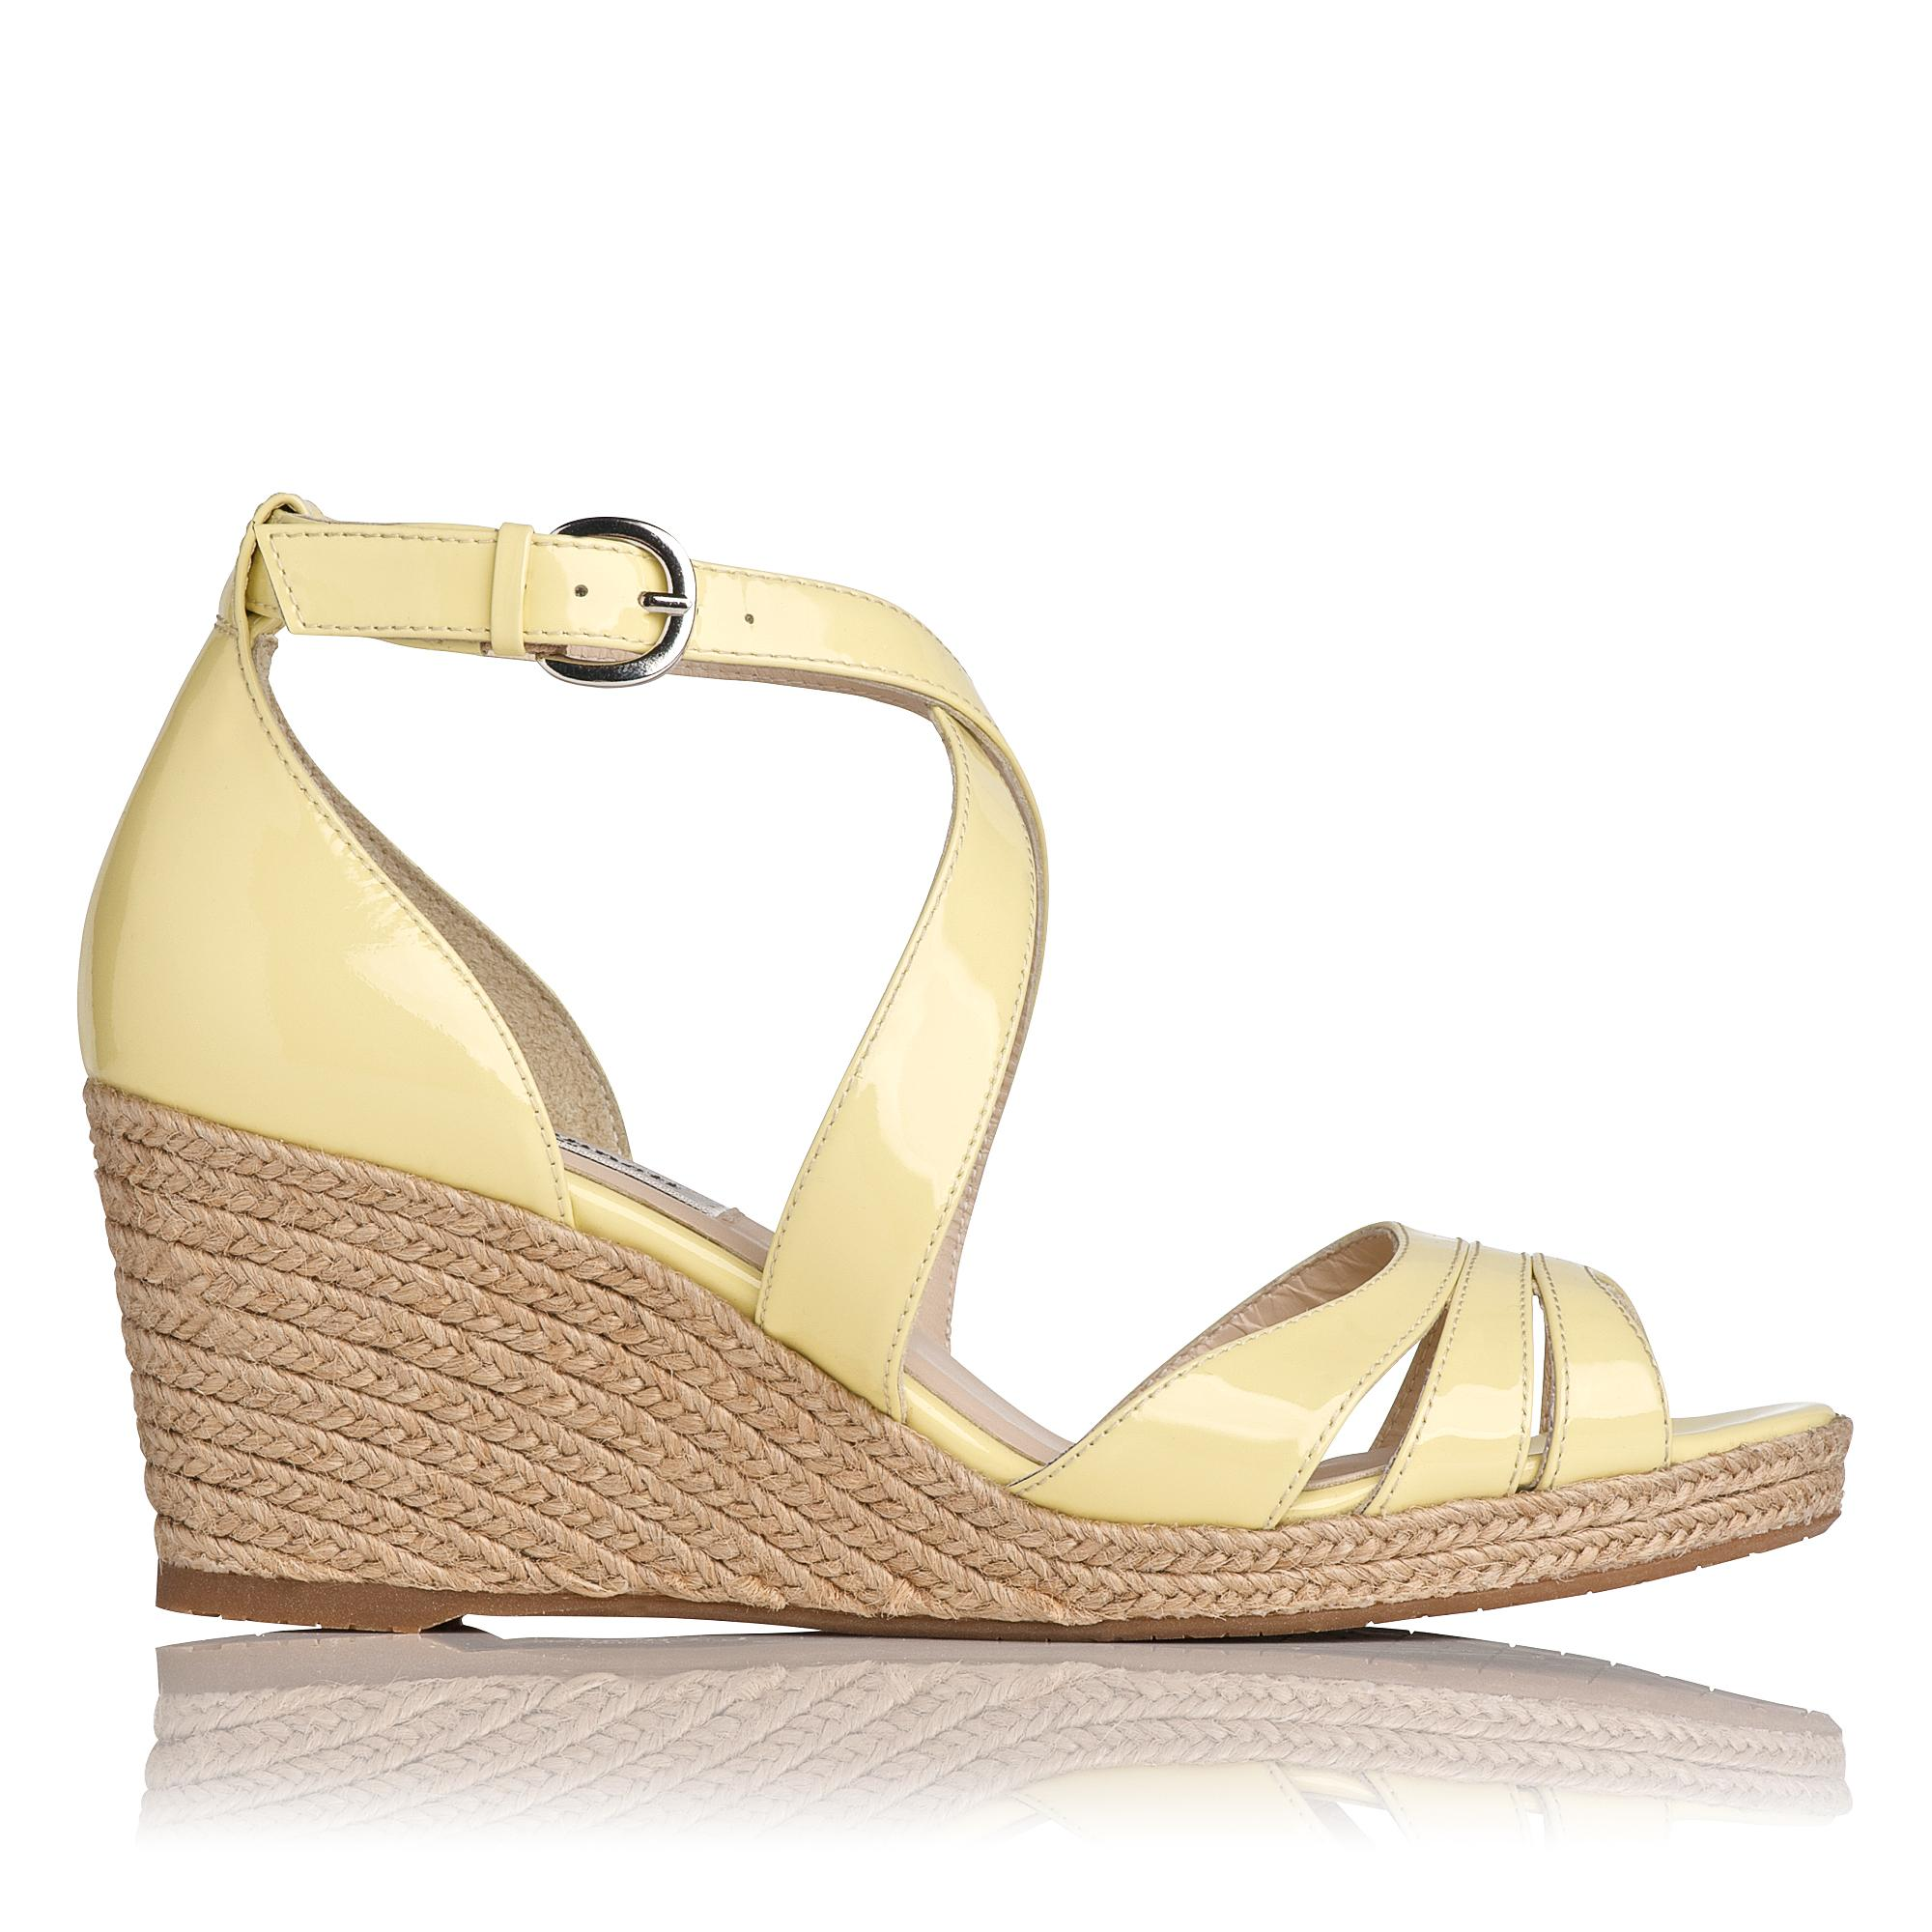 c1456df20e8 Priya Leather Espadrille Wedge